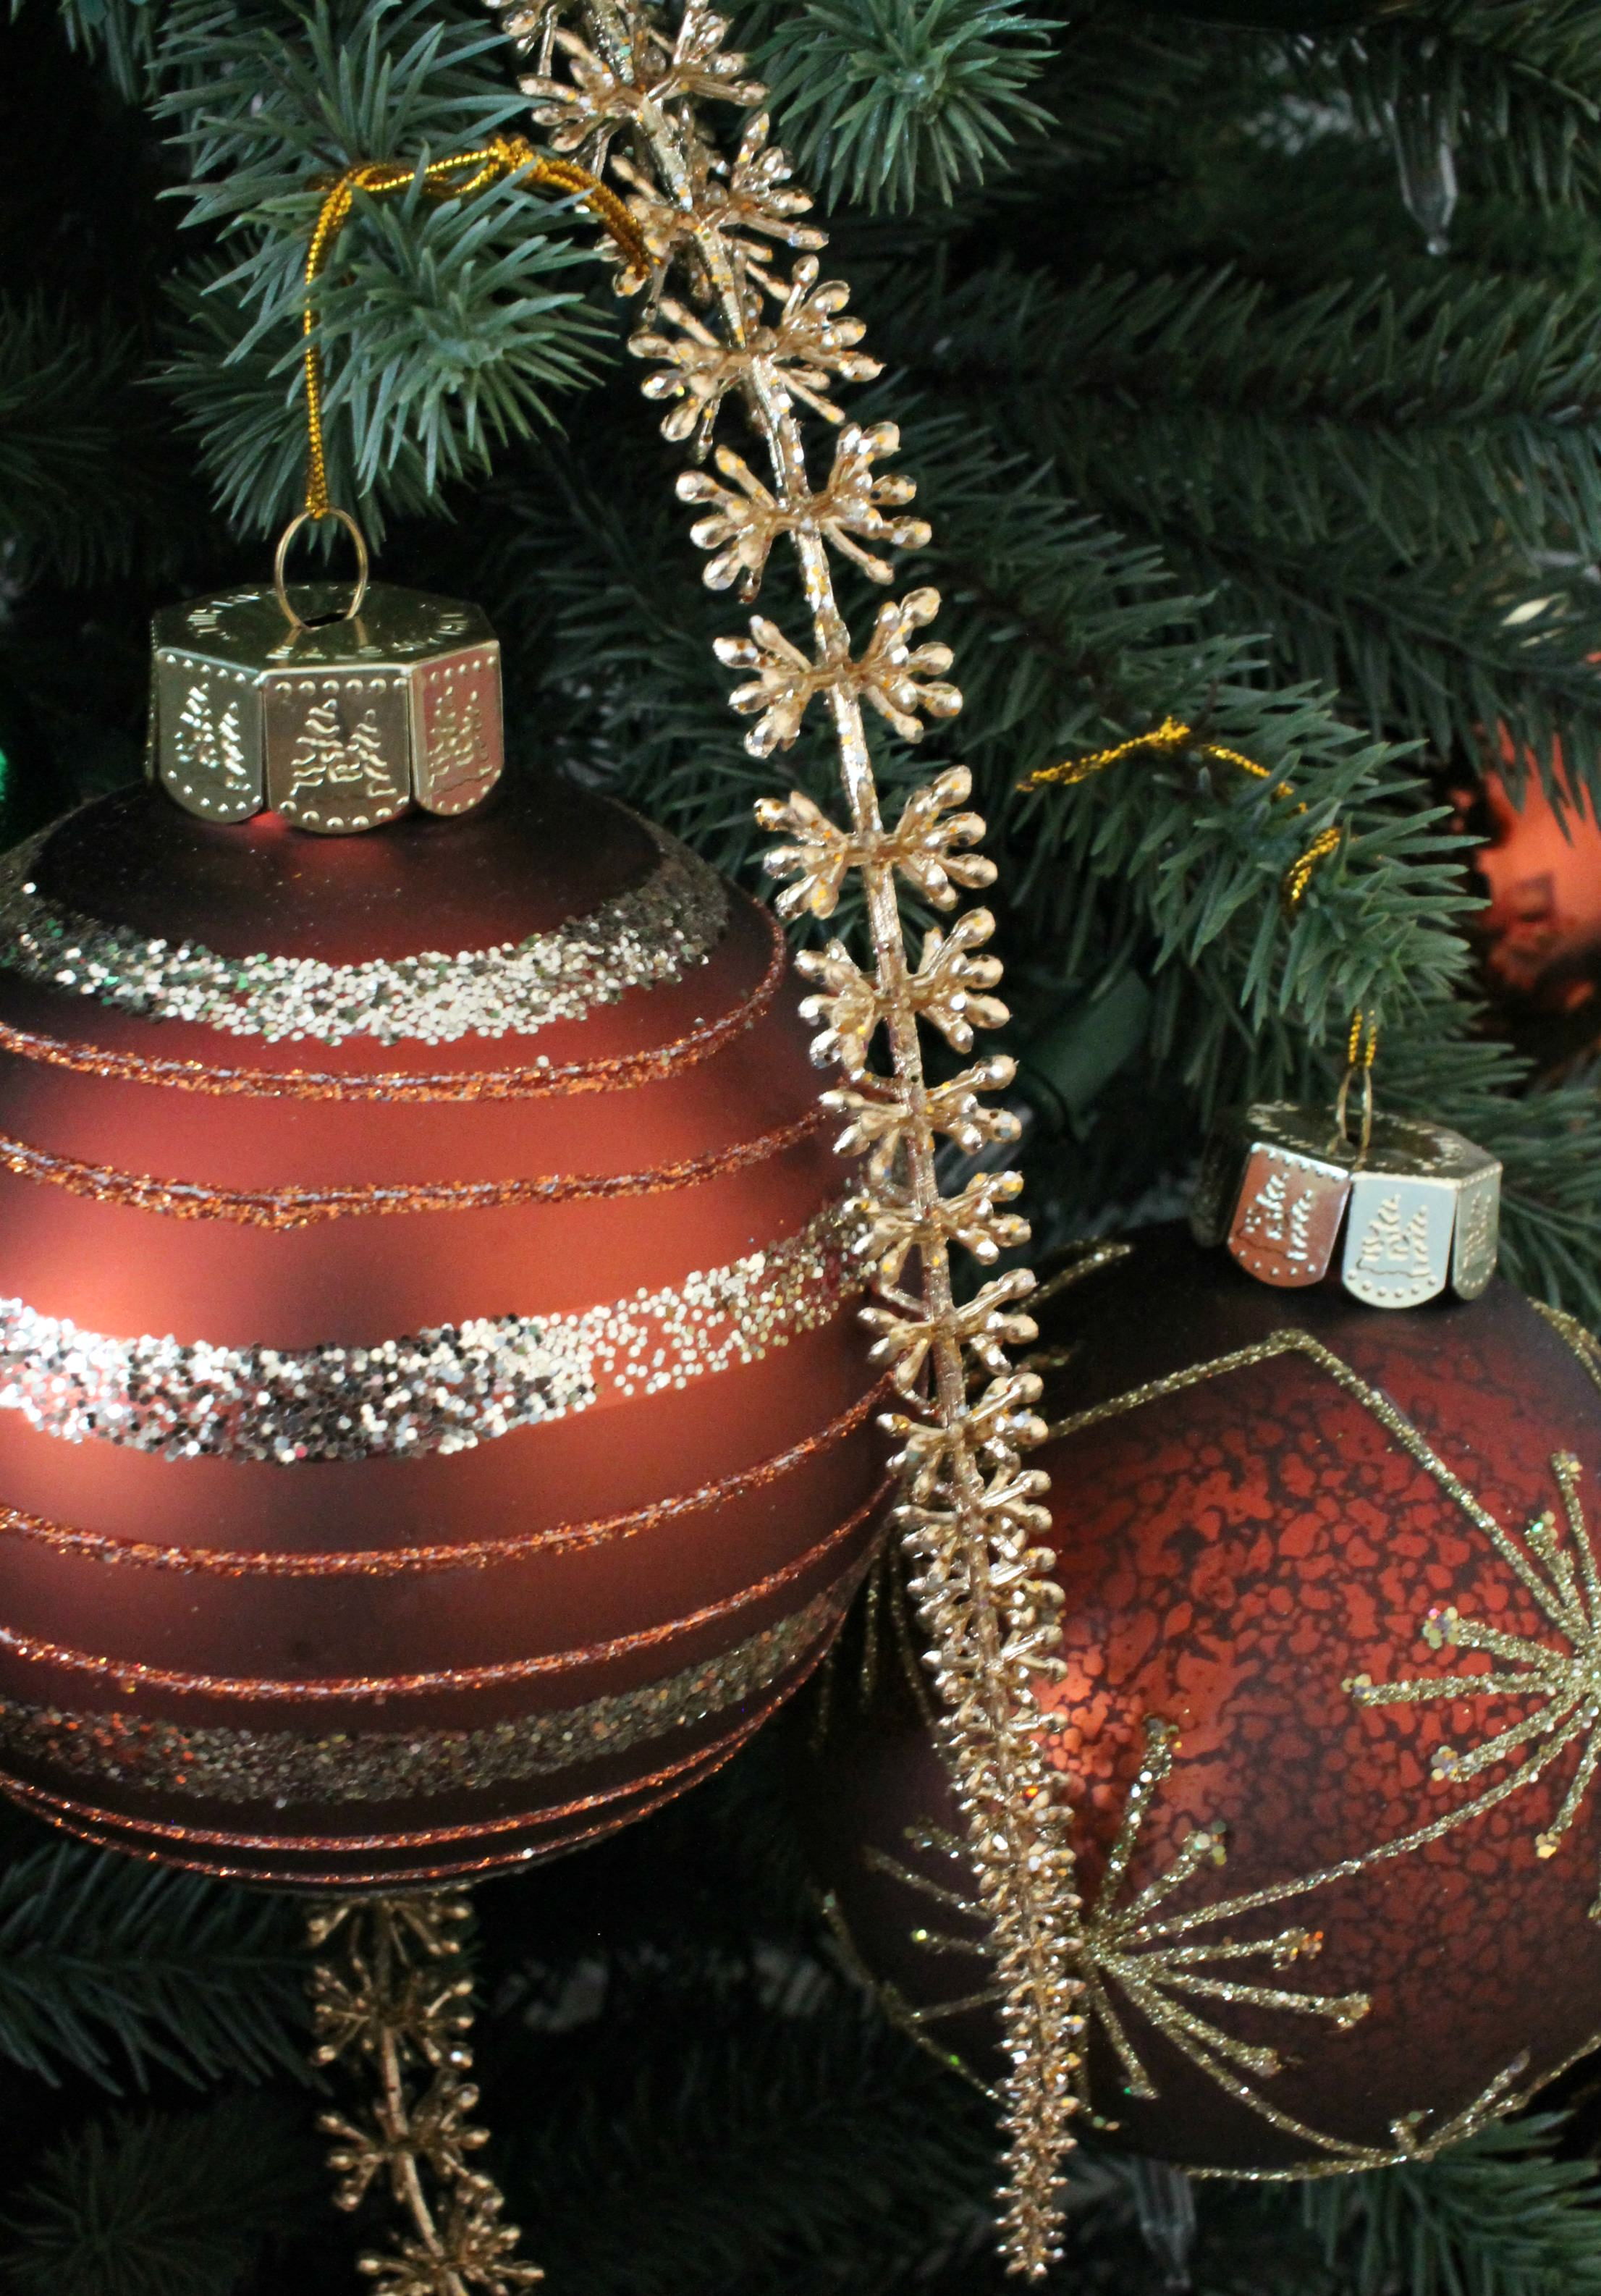 Here Are More Georgetown Baubles From Balsam Hill